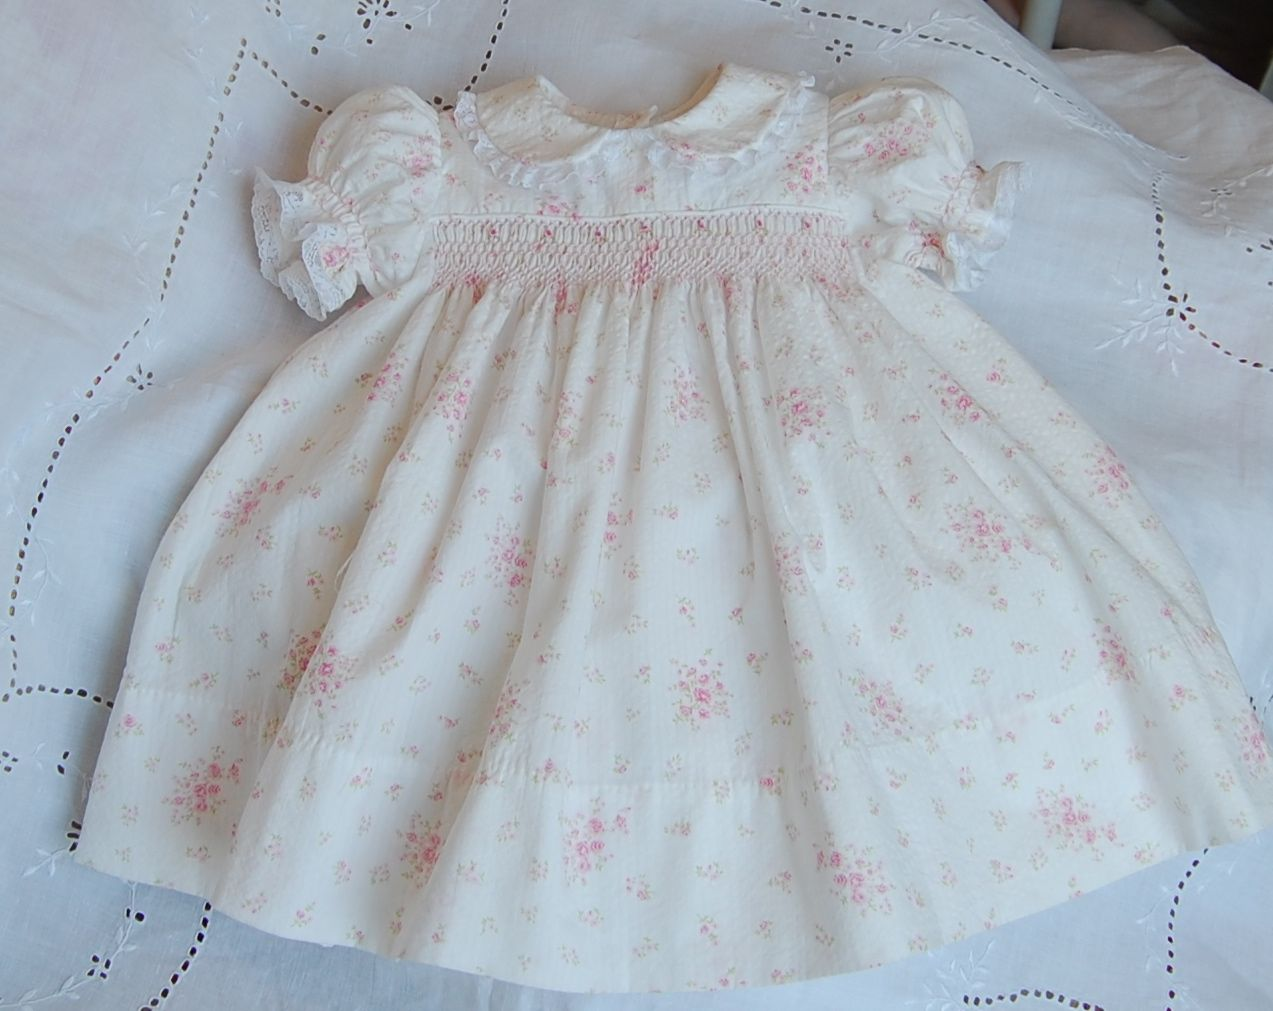 Smocked Dresses for Infant Baby Girls Infant baby girls smocked dresses delicately hand embroidered, with colorful threads on fine fabrics like % Pima Cotton and Silk Dupioni. These girls dresses are perfect for your little girls special occasion.